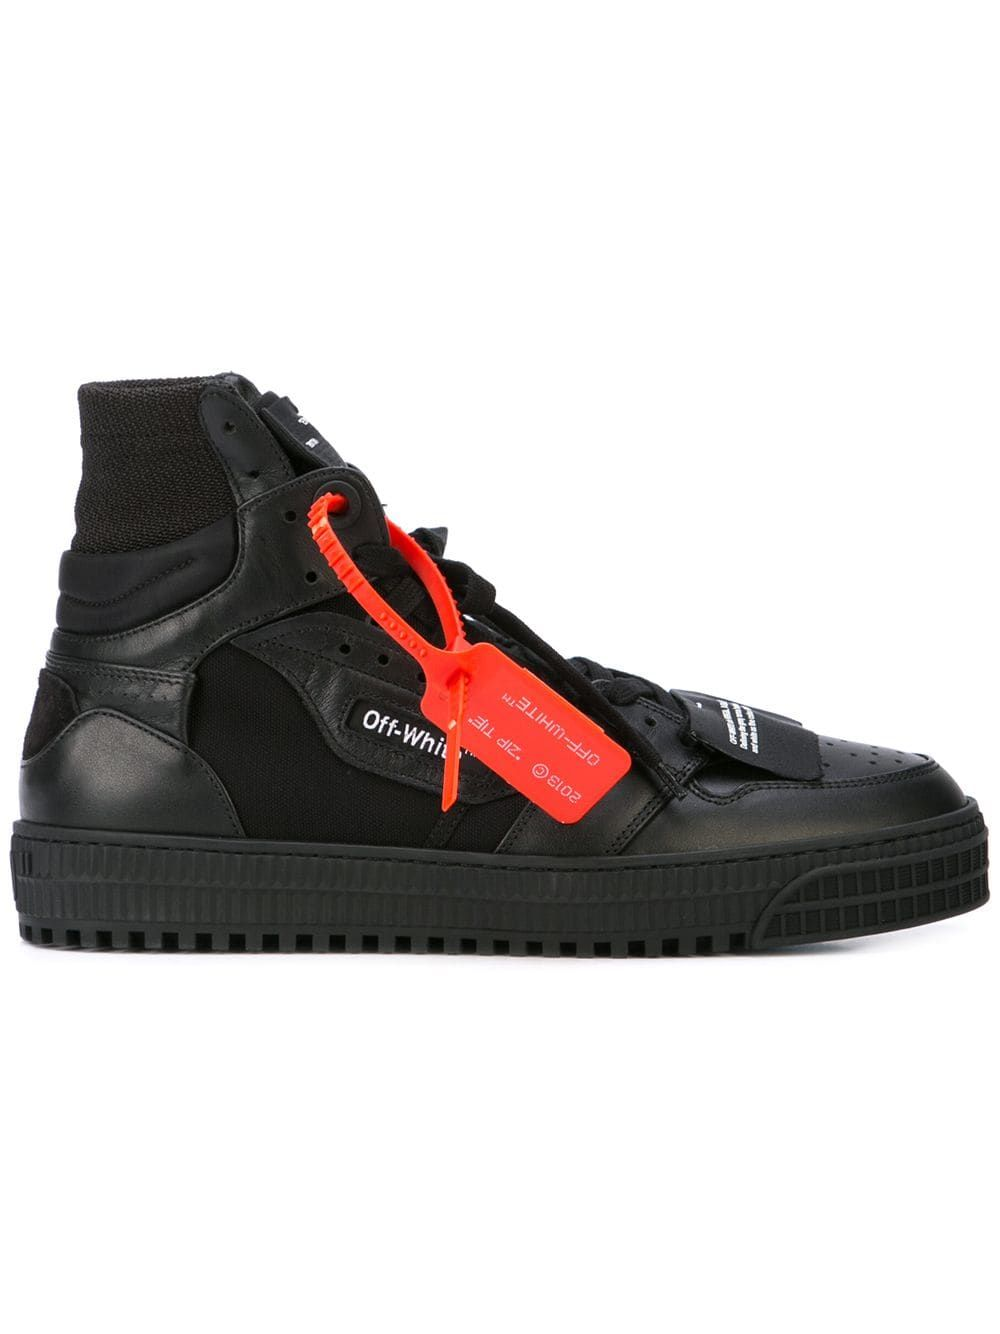 2245fbaa4fff OFF-WHITE Off-White Off-Court 3.0 Sneakers - Farfetch.  off-white ...